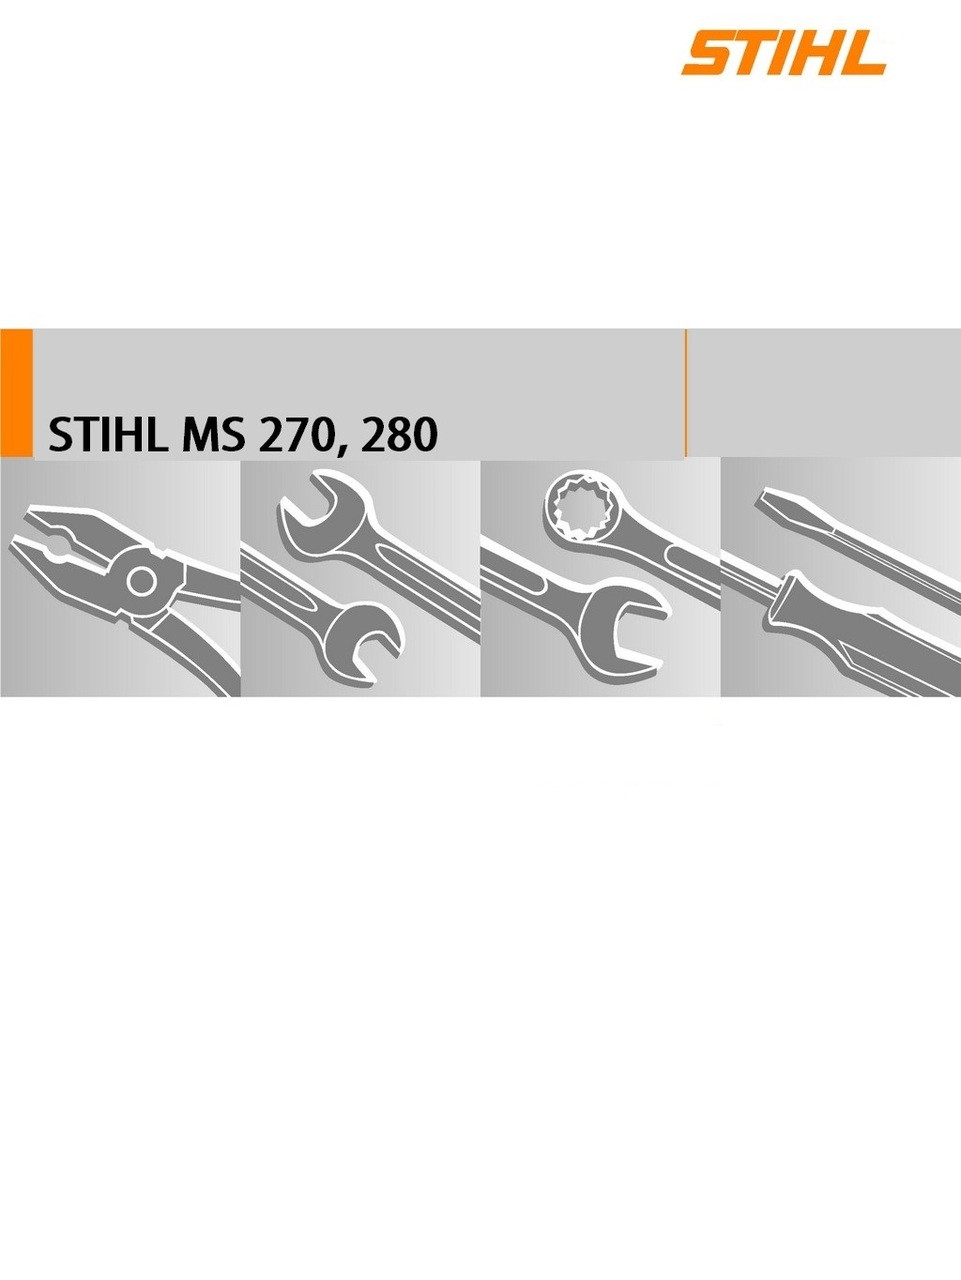 ... Chainsaw; Download Service Manual For Stihl MS270, 280. Image 1